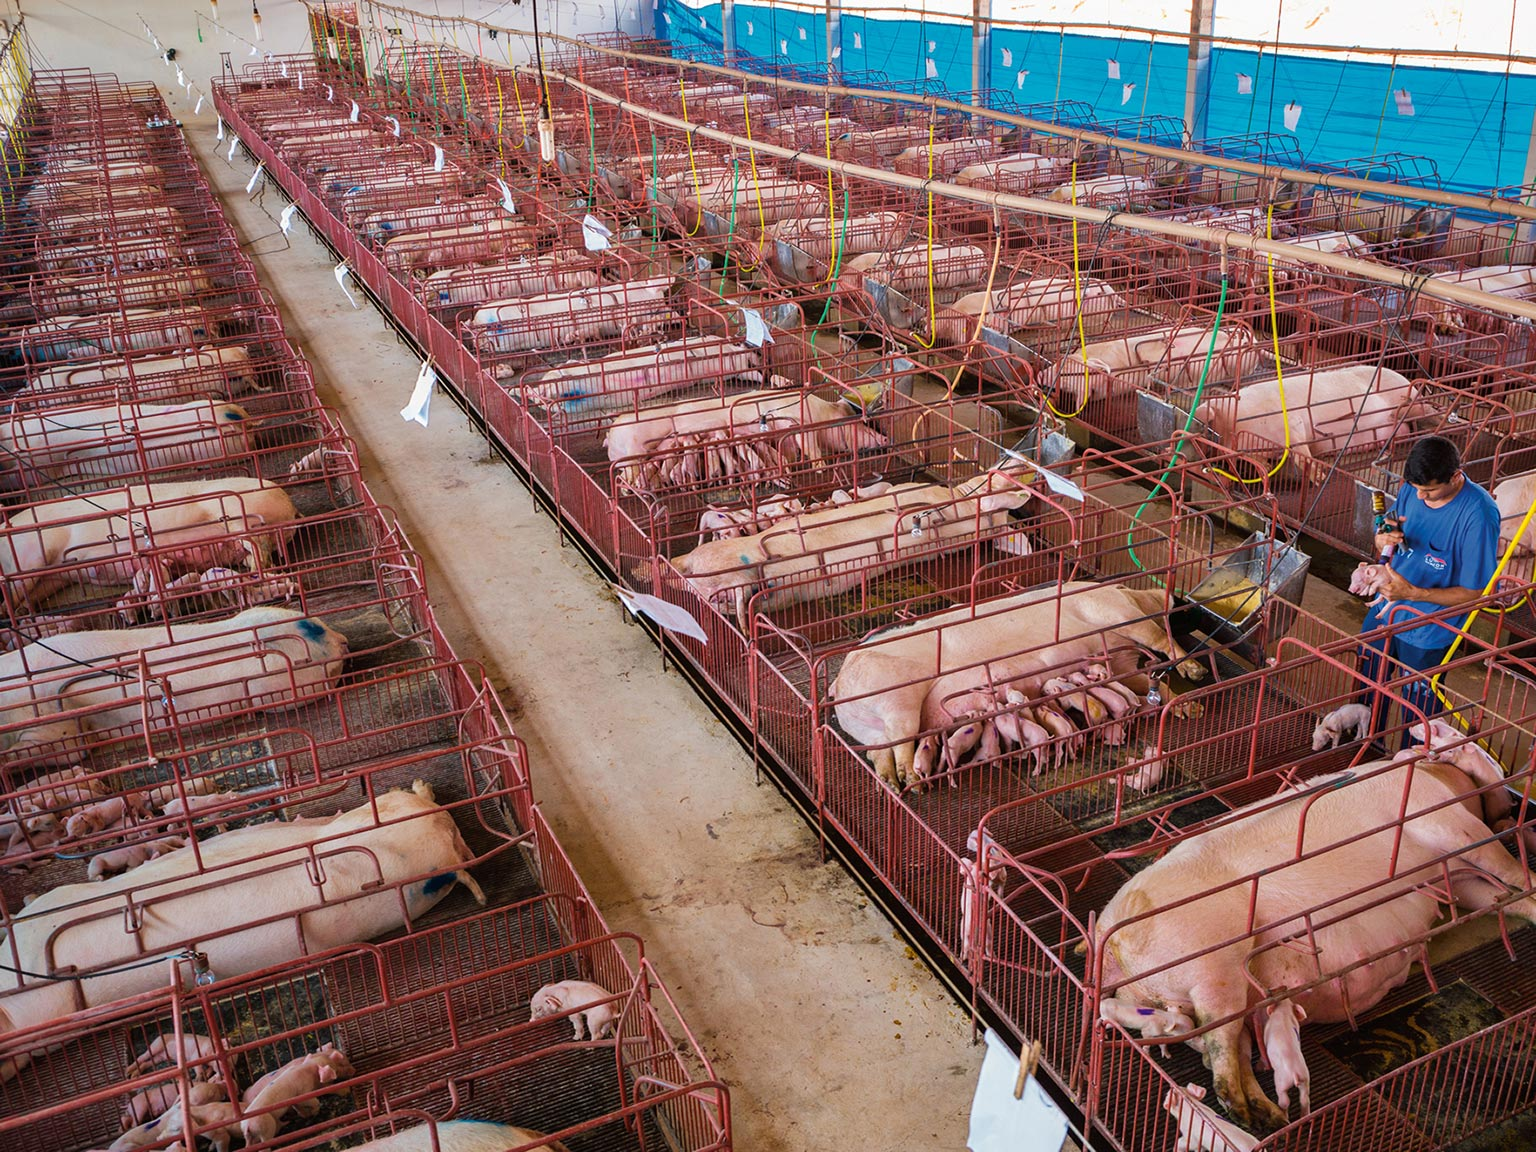 Feeding 9 Billion National Geographic Chicken Wing Diagram Images Pictures Becuo Picture Of The Nutribras Pig Farm In Mato Grosso Brazil With Sows Confined To